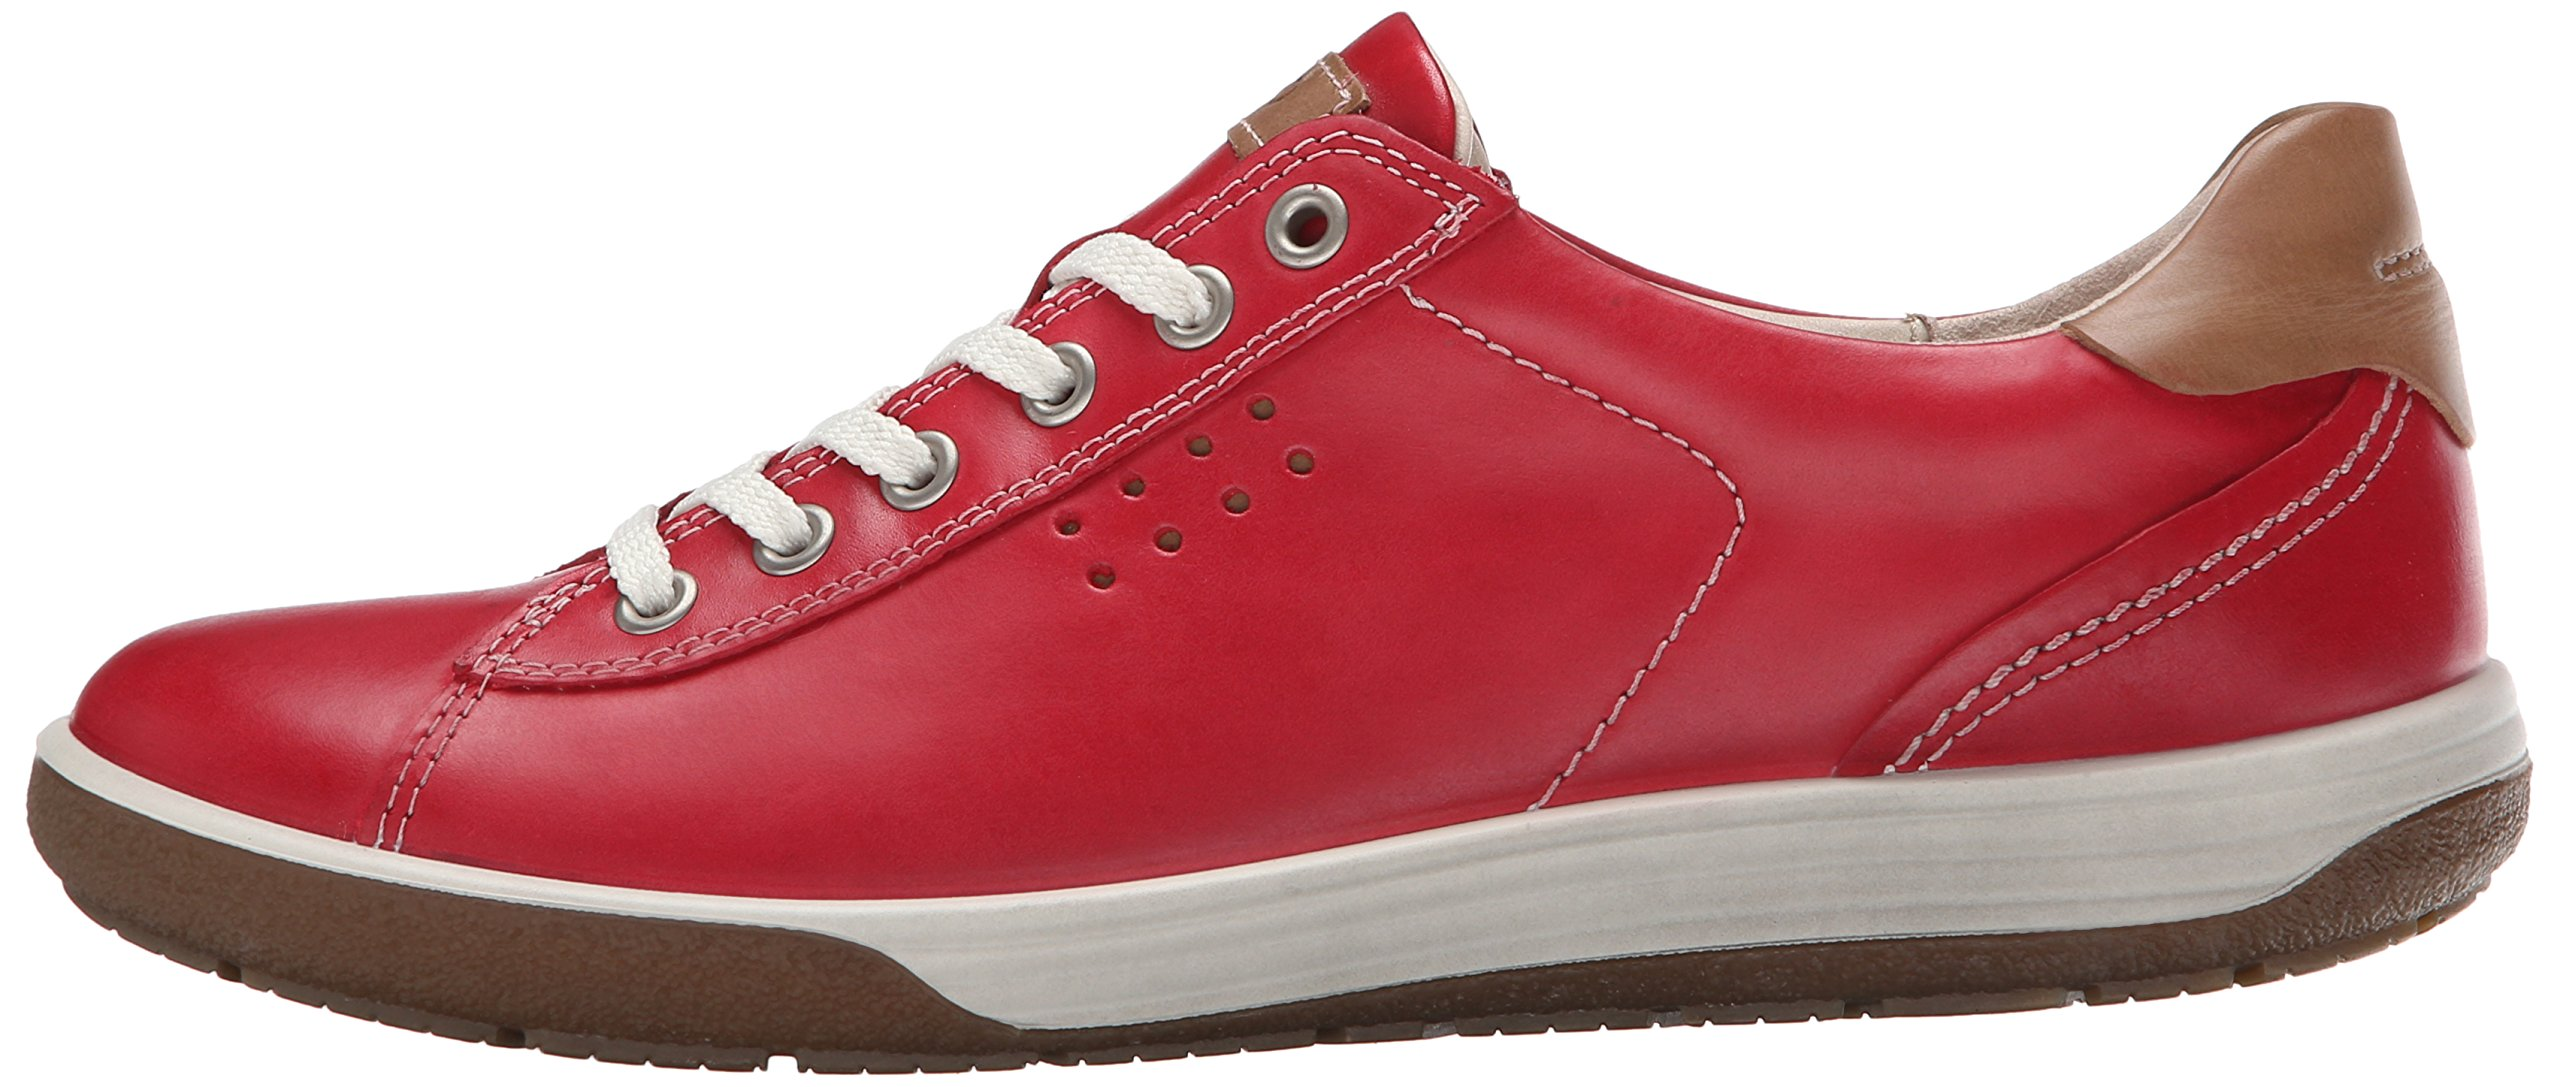 ECCO Footwear Womens Chase Tie Sneaker, Chilli Red, 39 EU/8-8.5 M US by ECCO (Image #5)